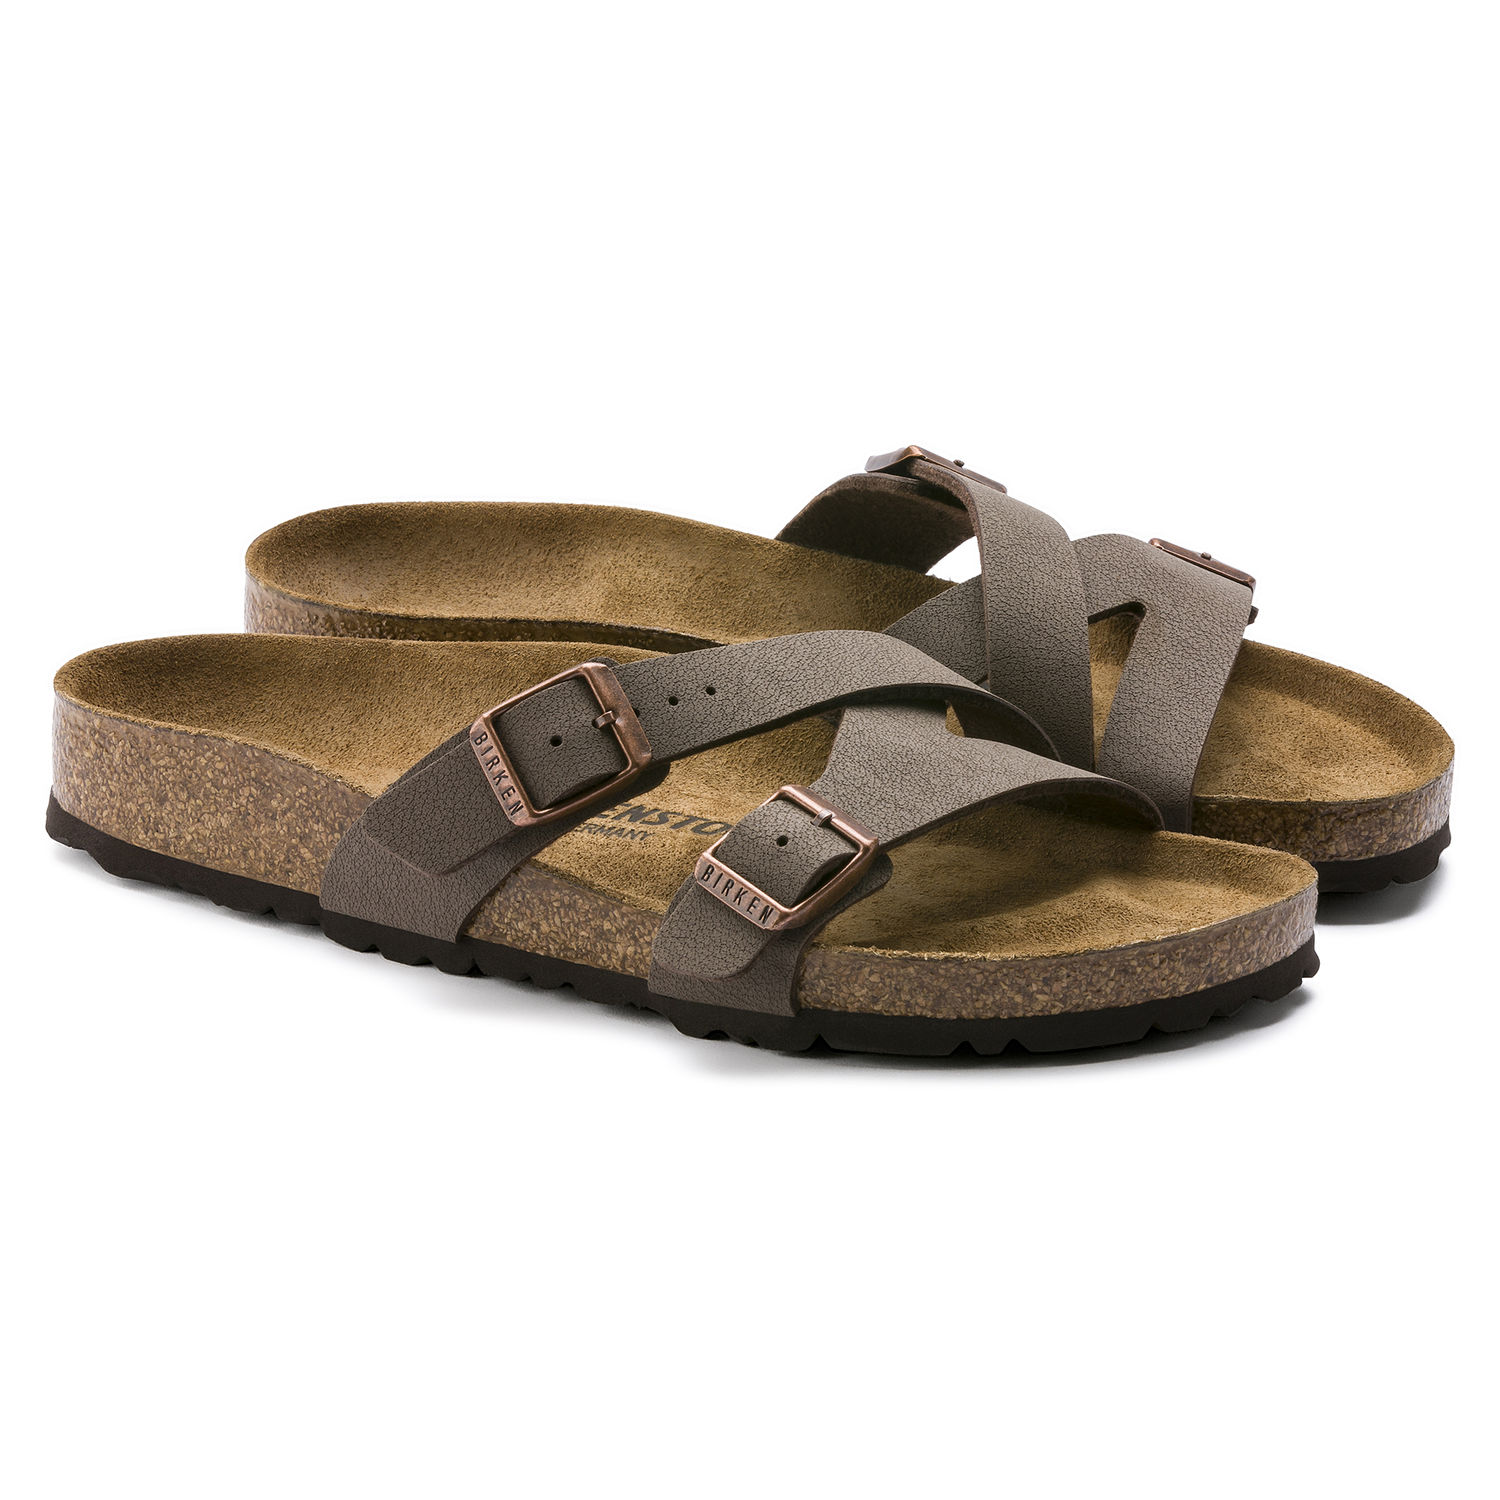 huge discount 3e039 820c7 BIRKENSTOCK YAO BALANCE CIABATTE DONNA MOCCA